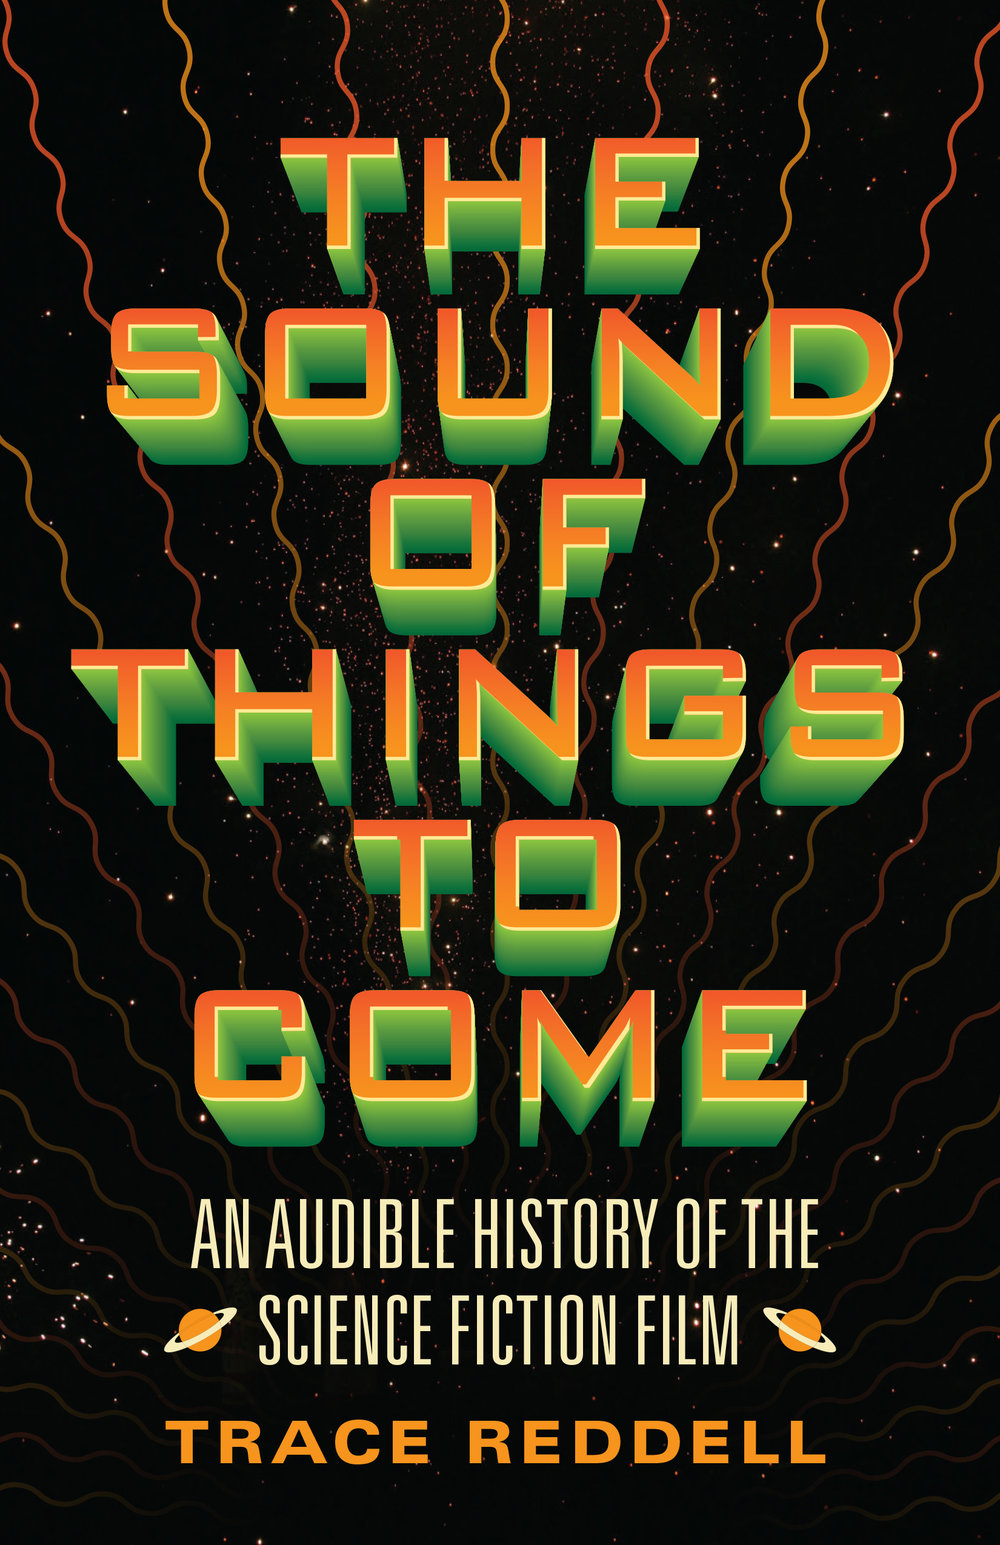 A groundbreaking approach to sound in sci-fi films offers new ways of construing both sonic innovation and science fiction cinema. - University of Minnesota Press, 2018